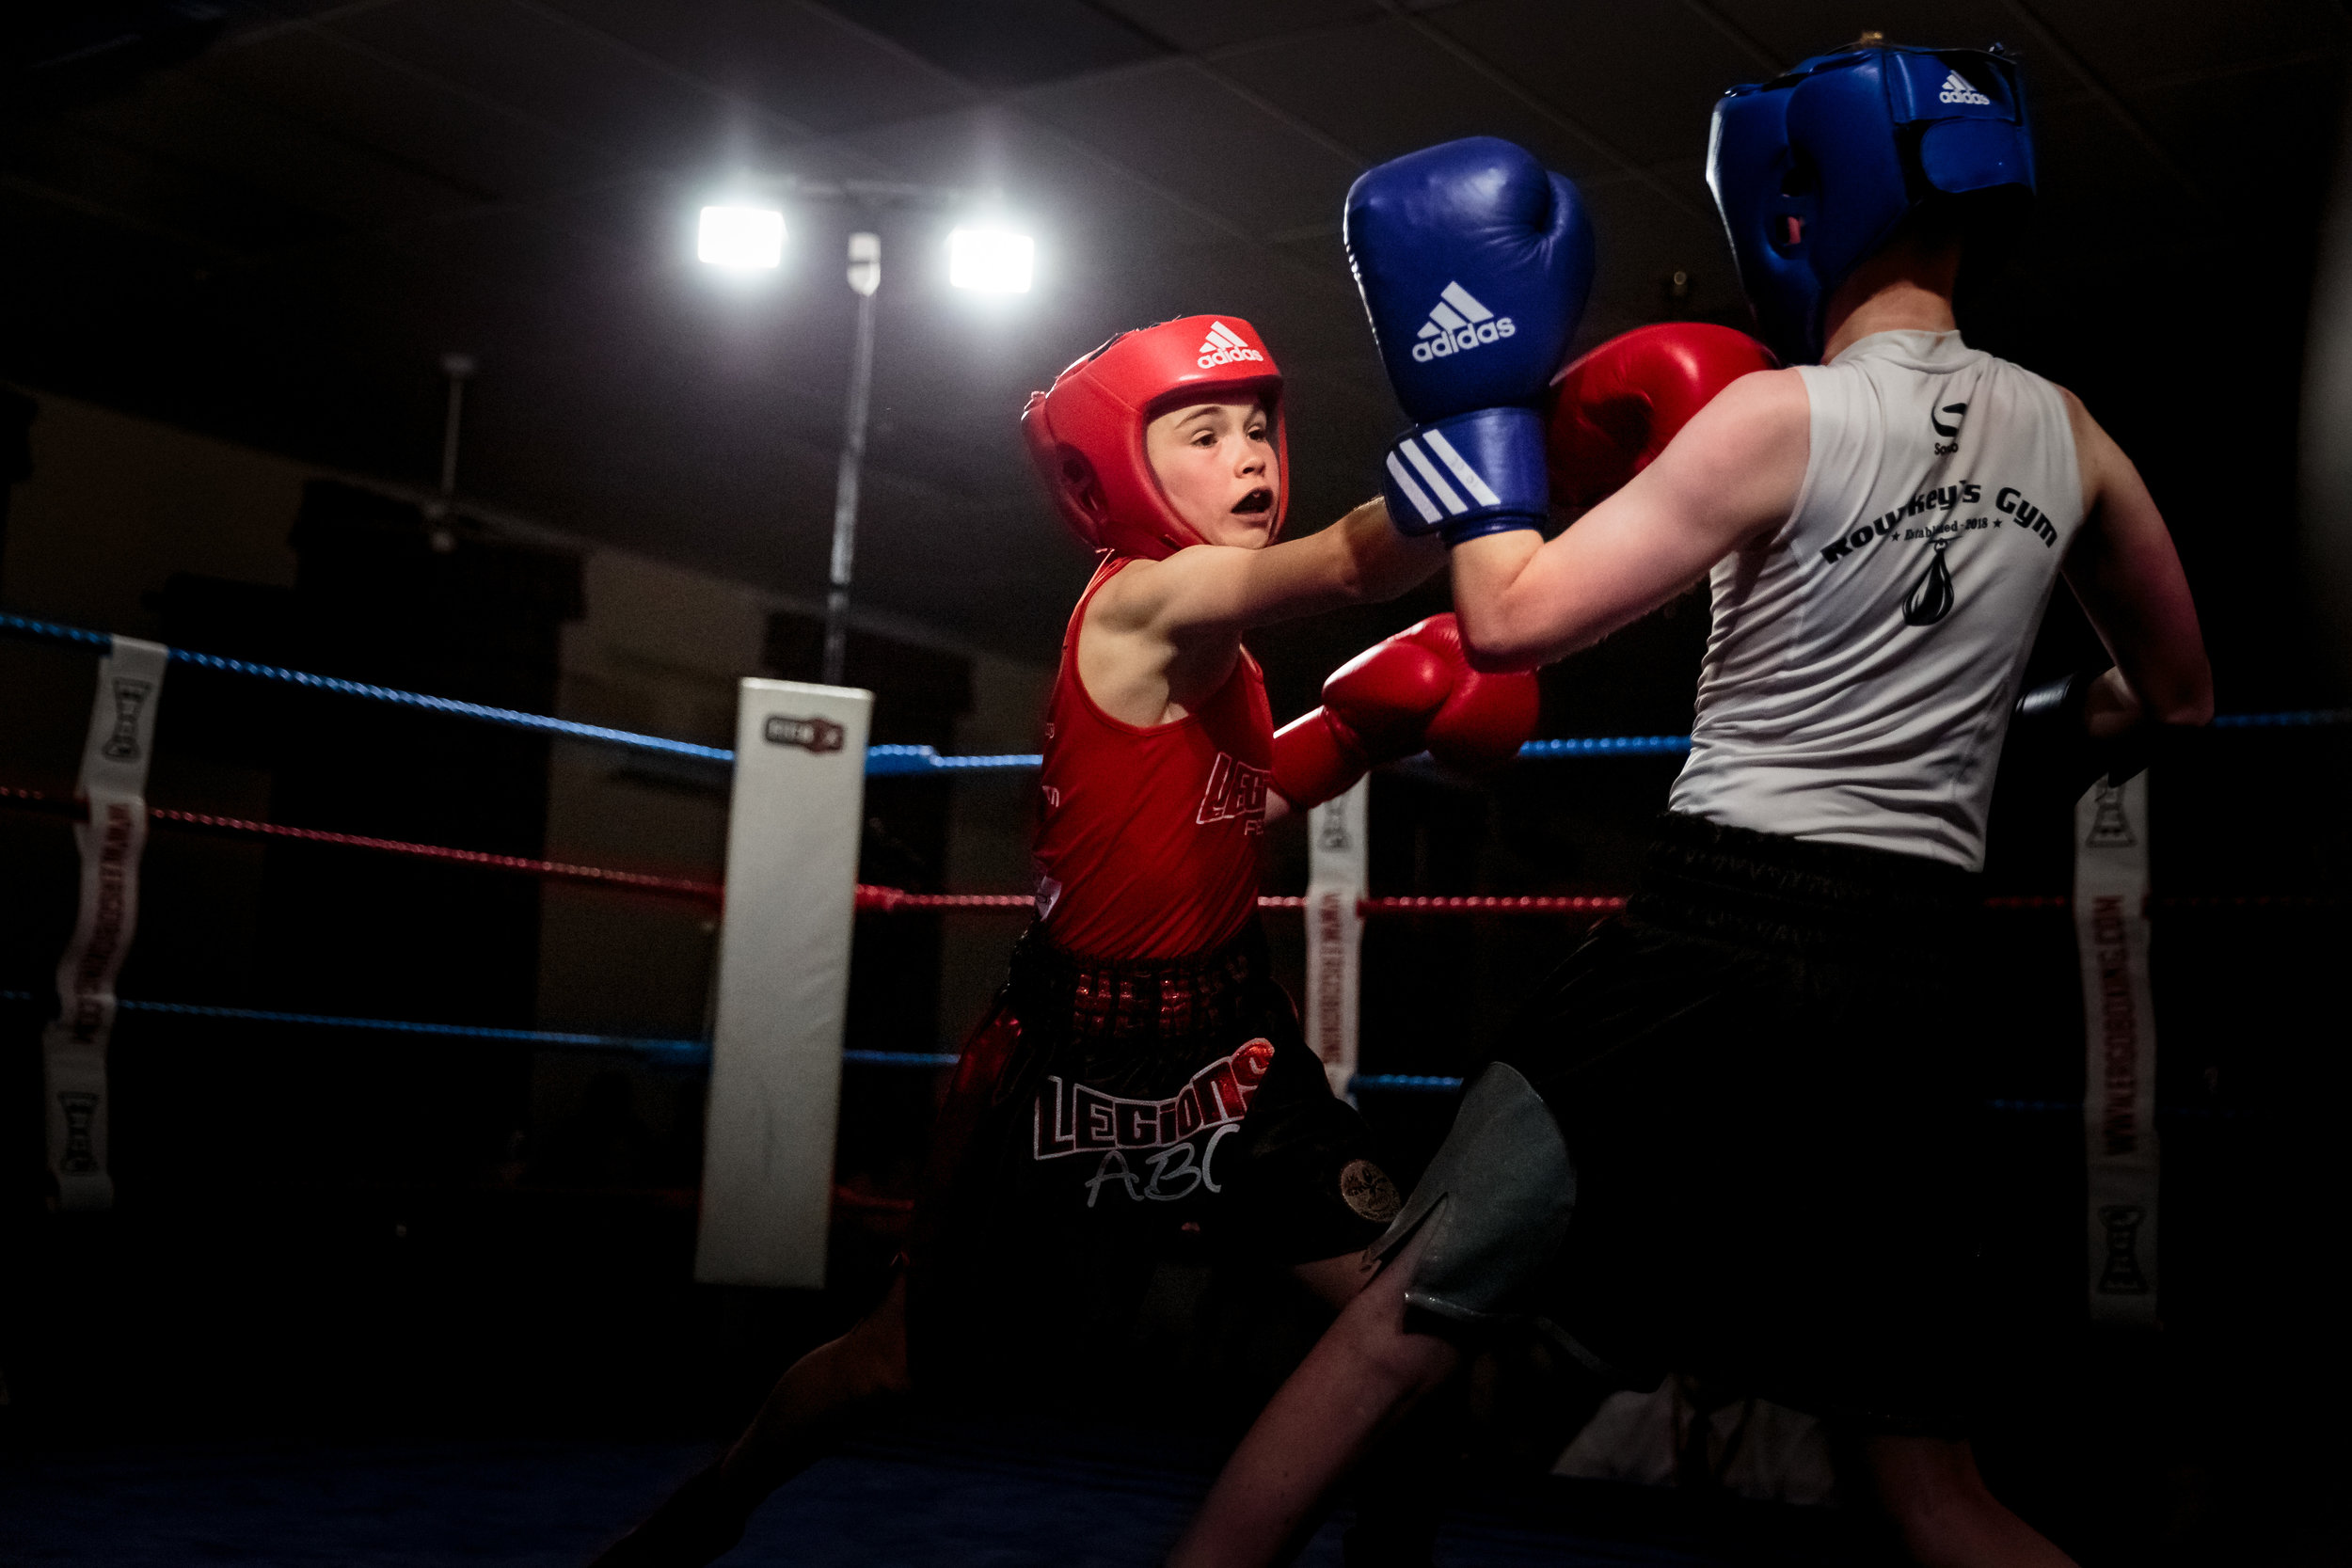 Amateur boxing in York